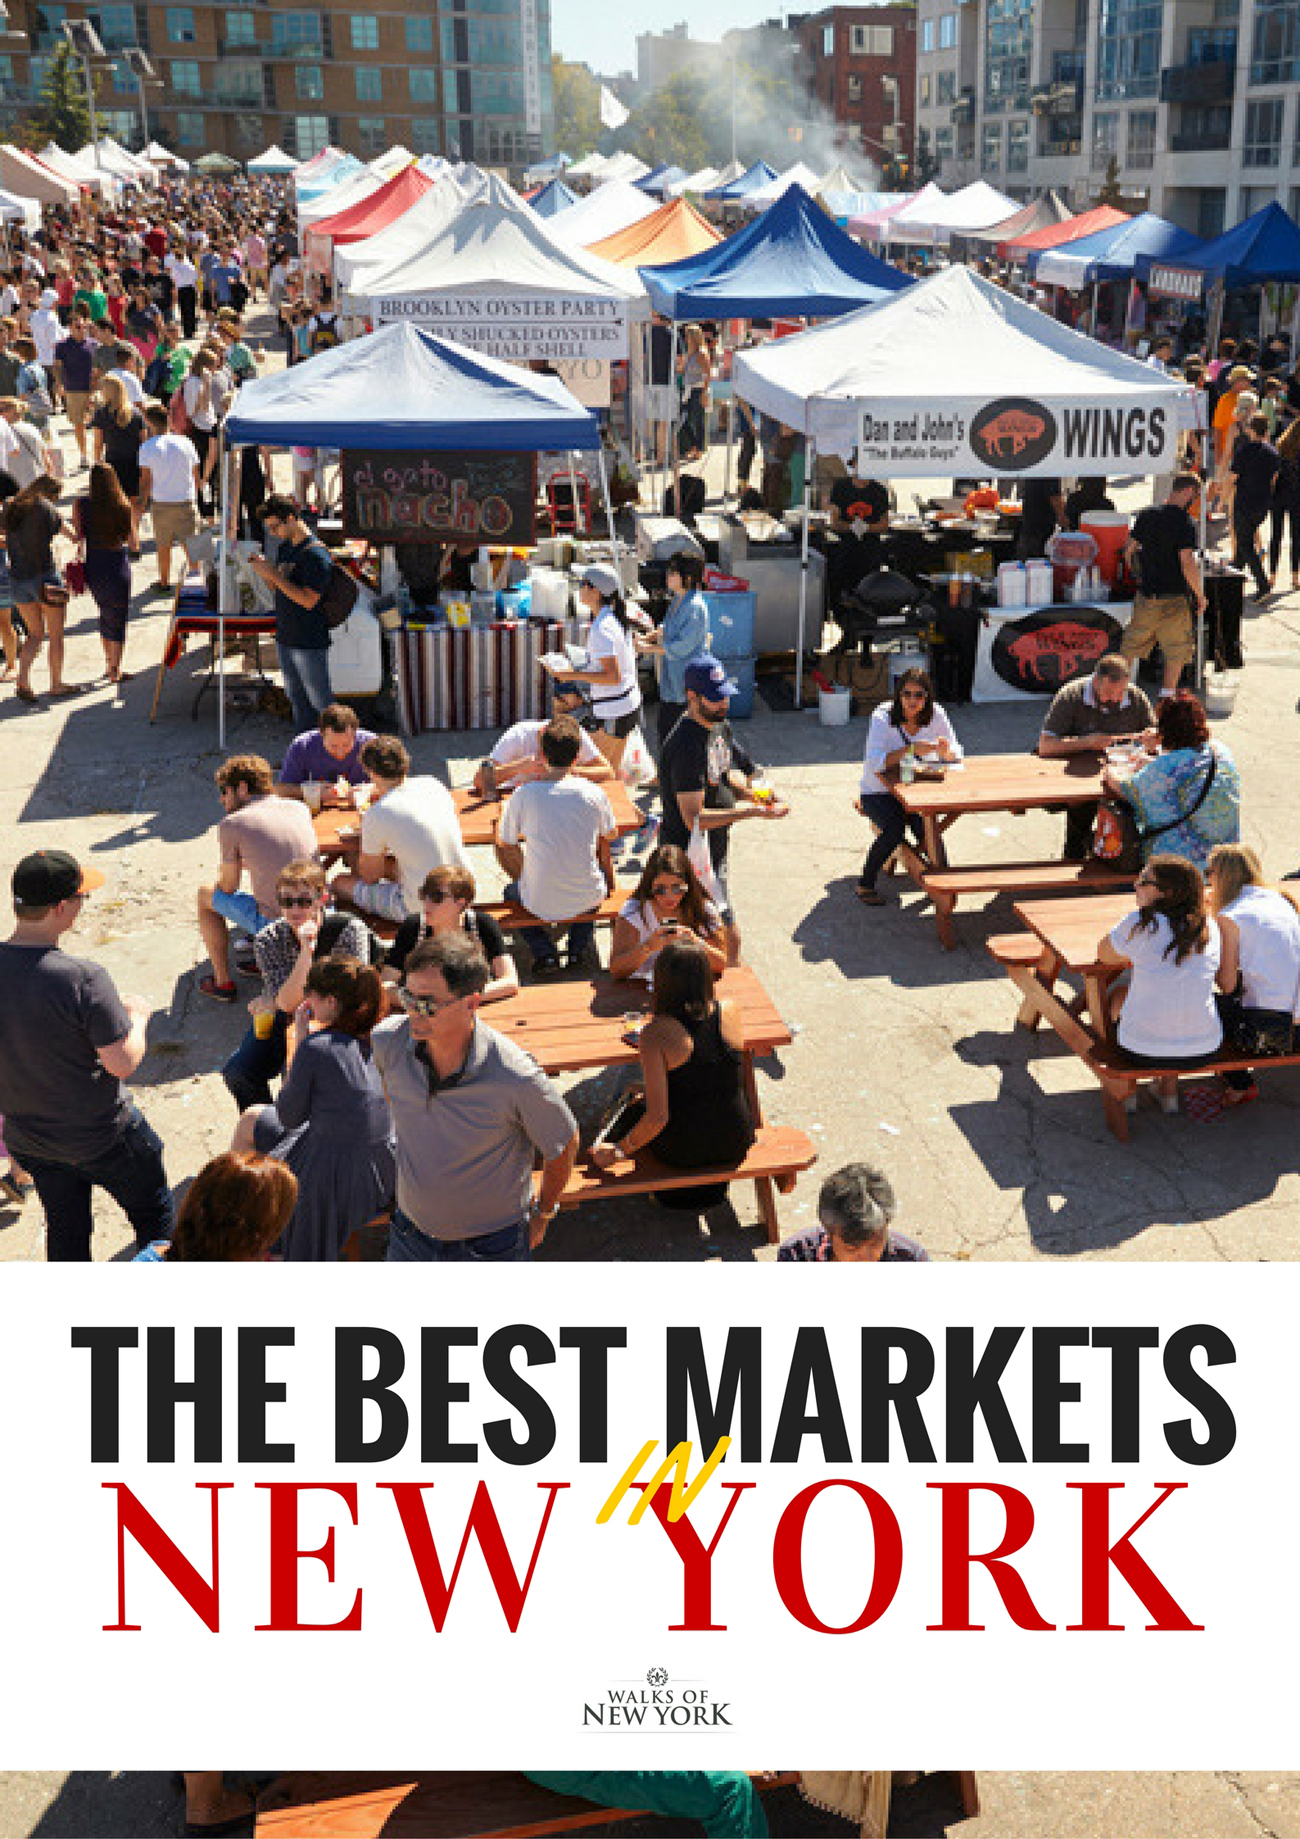 Smorgasburg is one of the best markets in NYC. Find out which markets you should visit on your next trip.